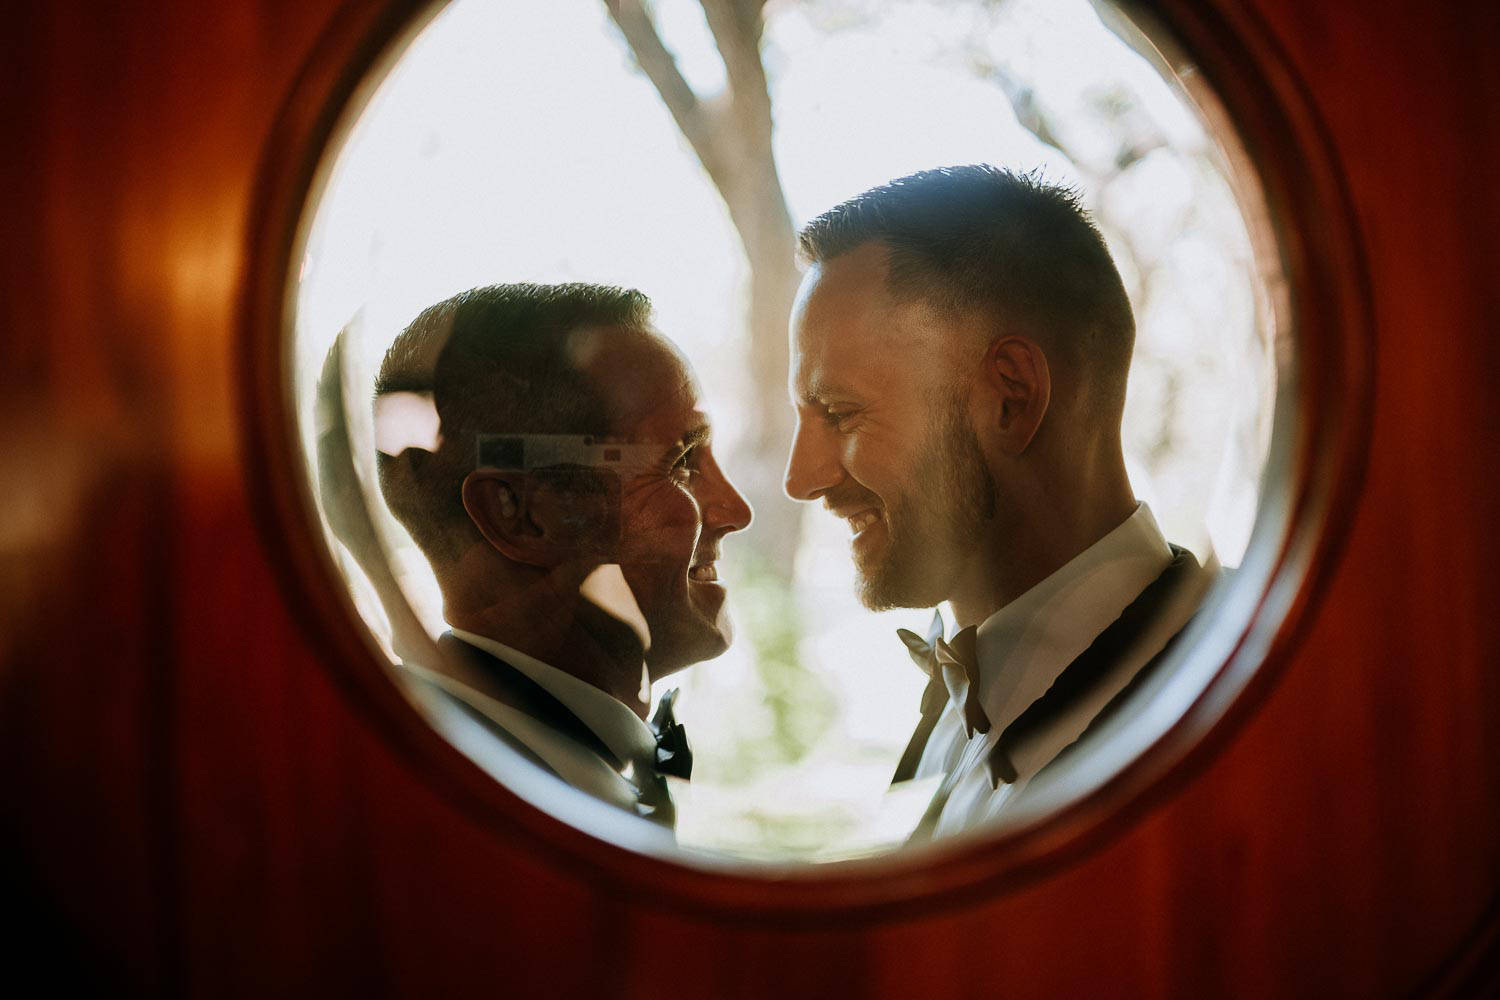 Two Men in a Mirror